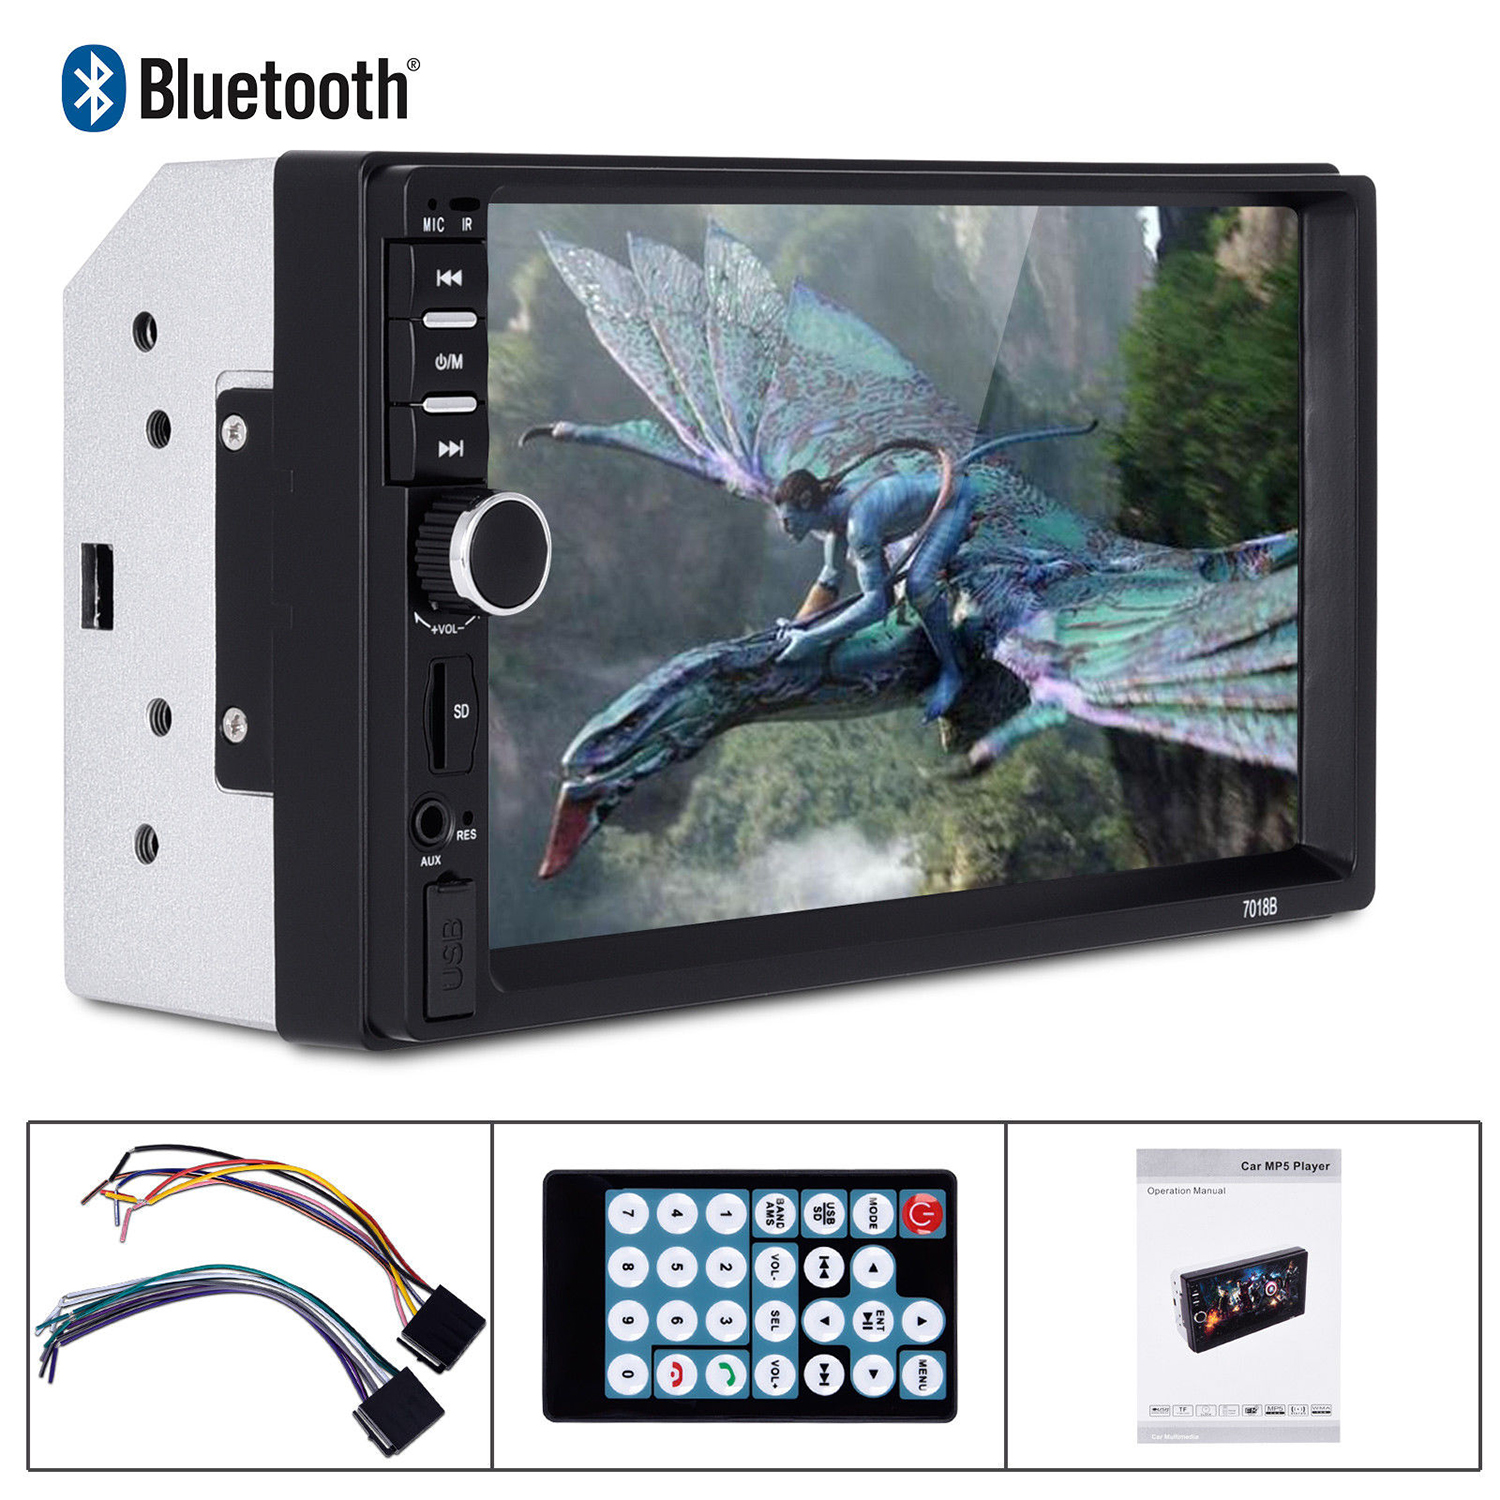 New 7 2 Din Touch Screen Car MP5 Player Bluetooth Stereo FM Radio USB/TF AUX In With Rear View Camera 7 inch 2din car radio mp5 player mp4 touch screen bluetooth rear camera dvr input stereo steering wheel control fm usb tf aux